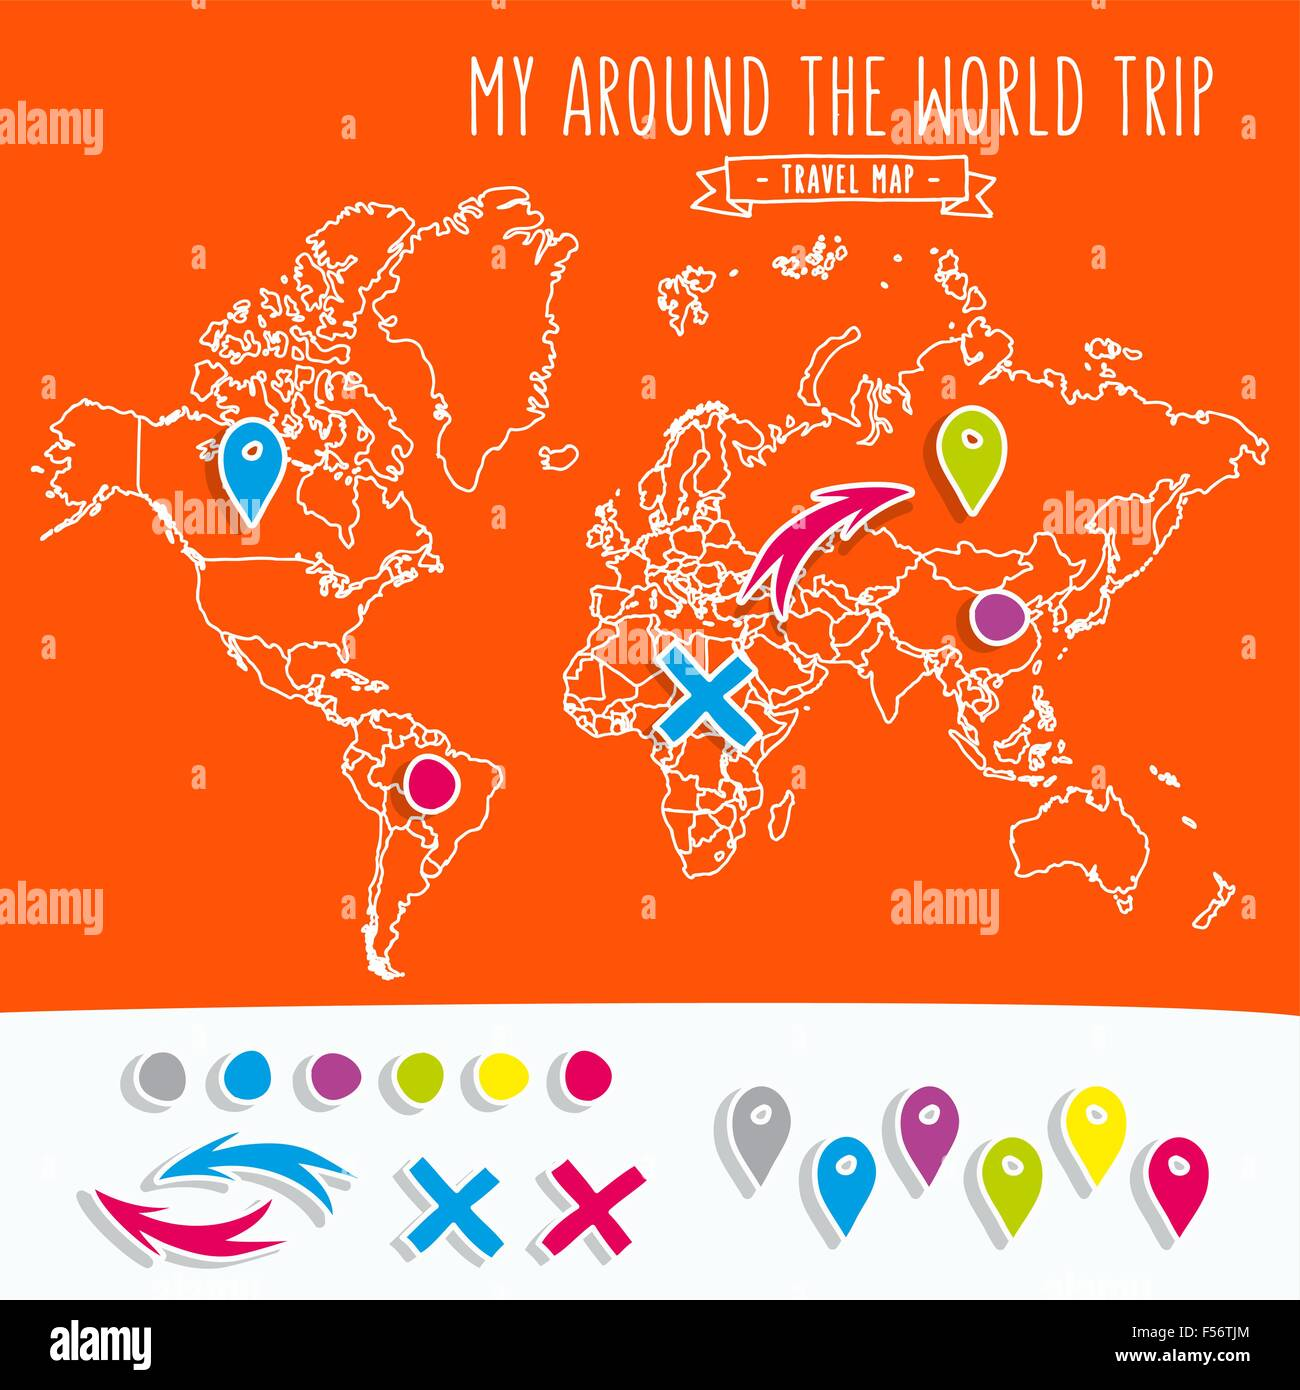 Hand Drawn World Map With Pins And Arrows Vector Design Cartoon – Travel World Map With Pins